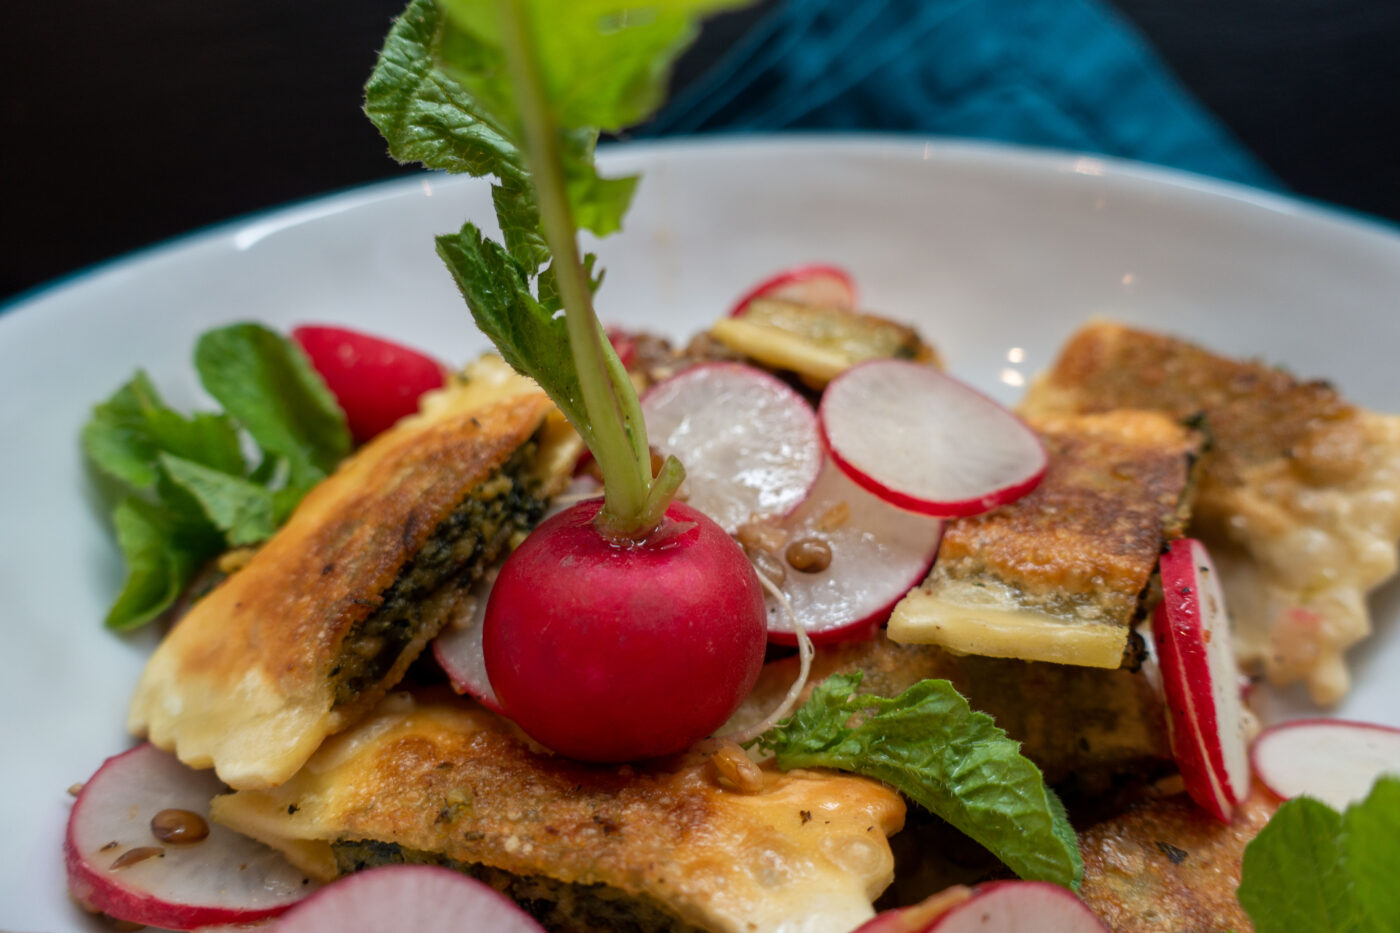 Maultaschen with radish and lentil vinaigrette